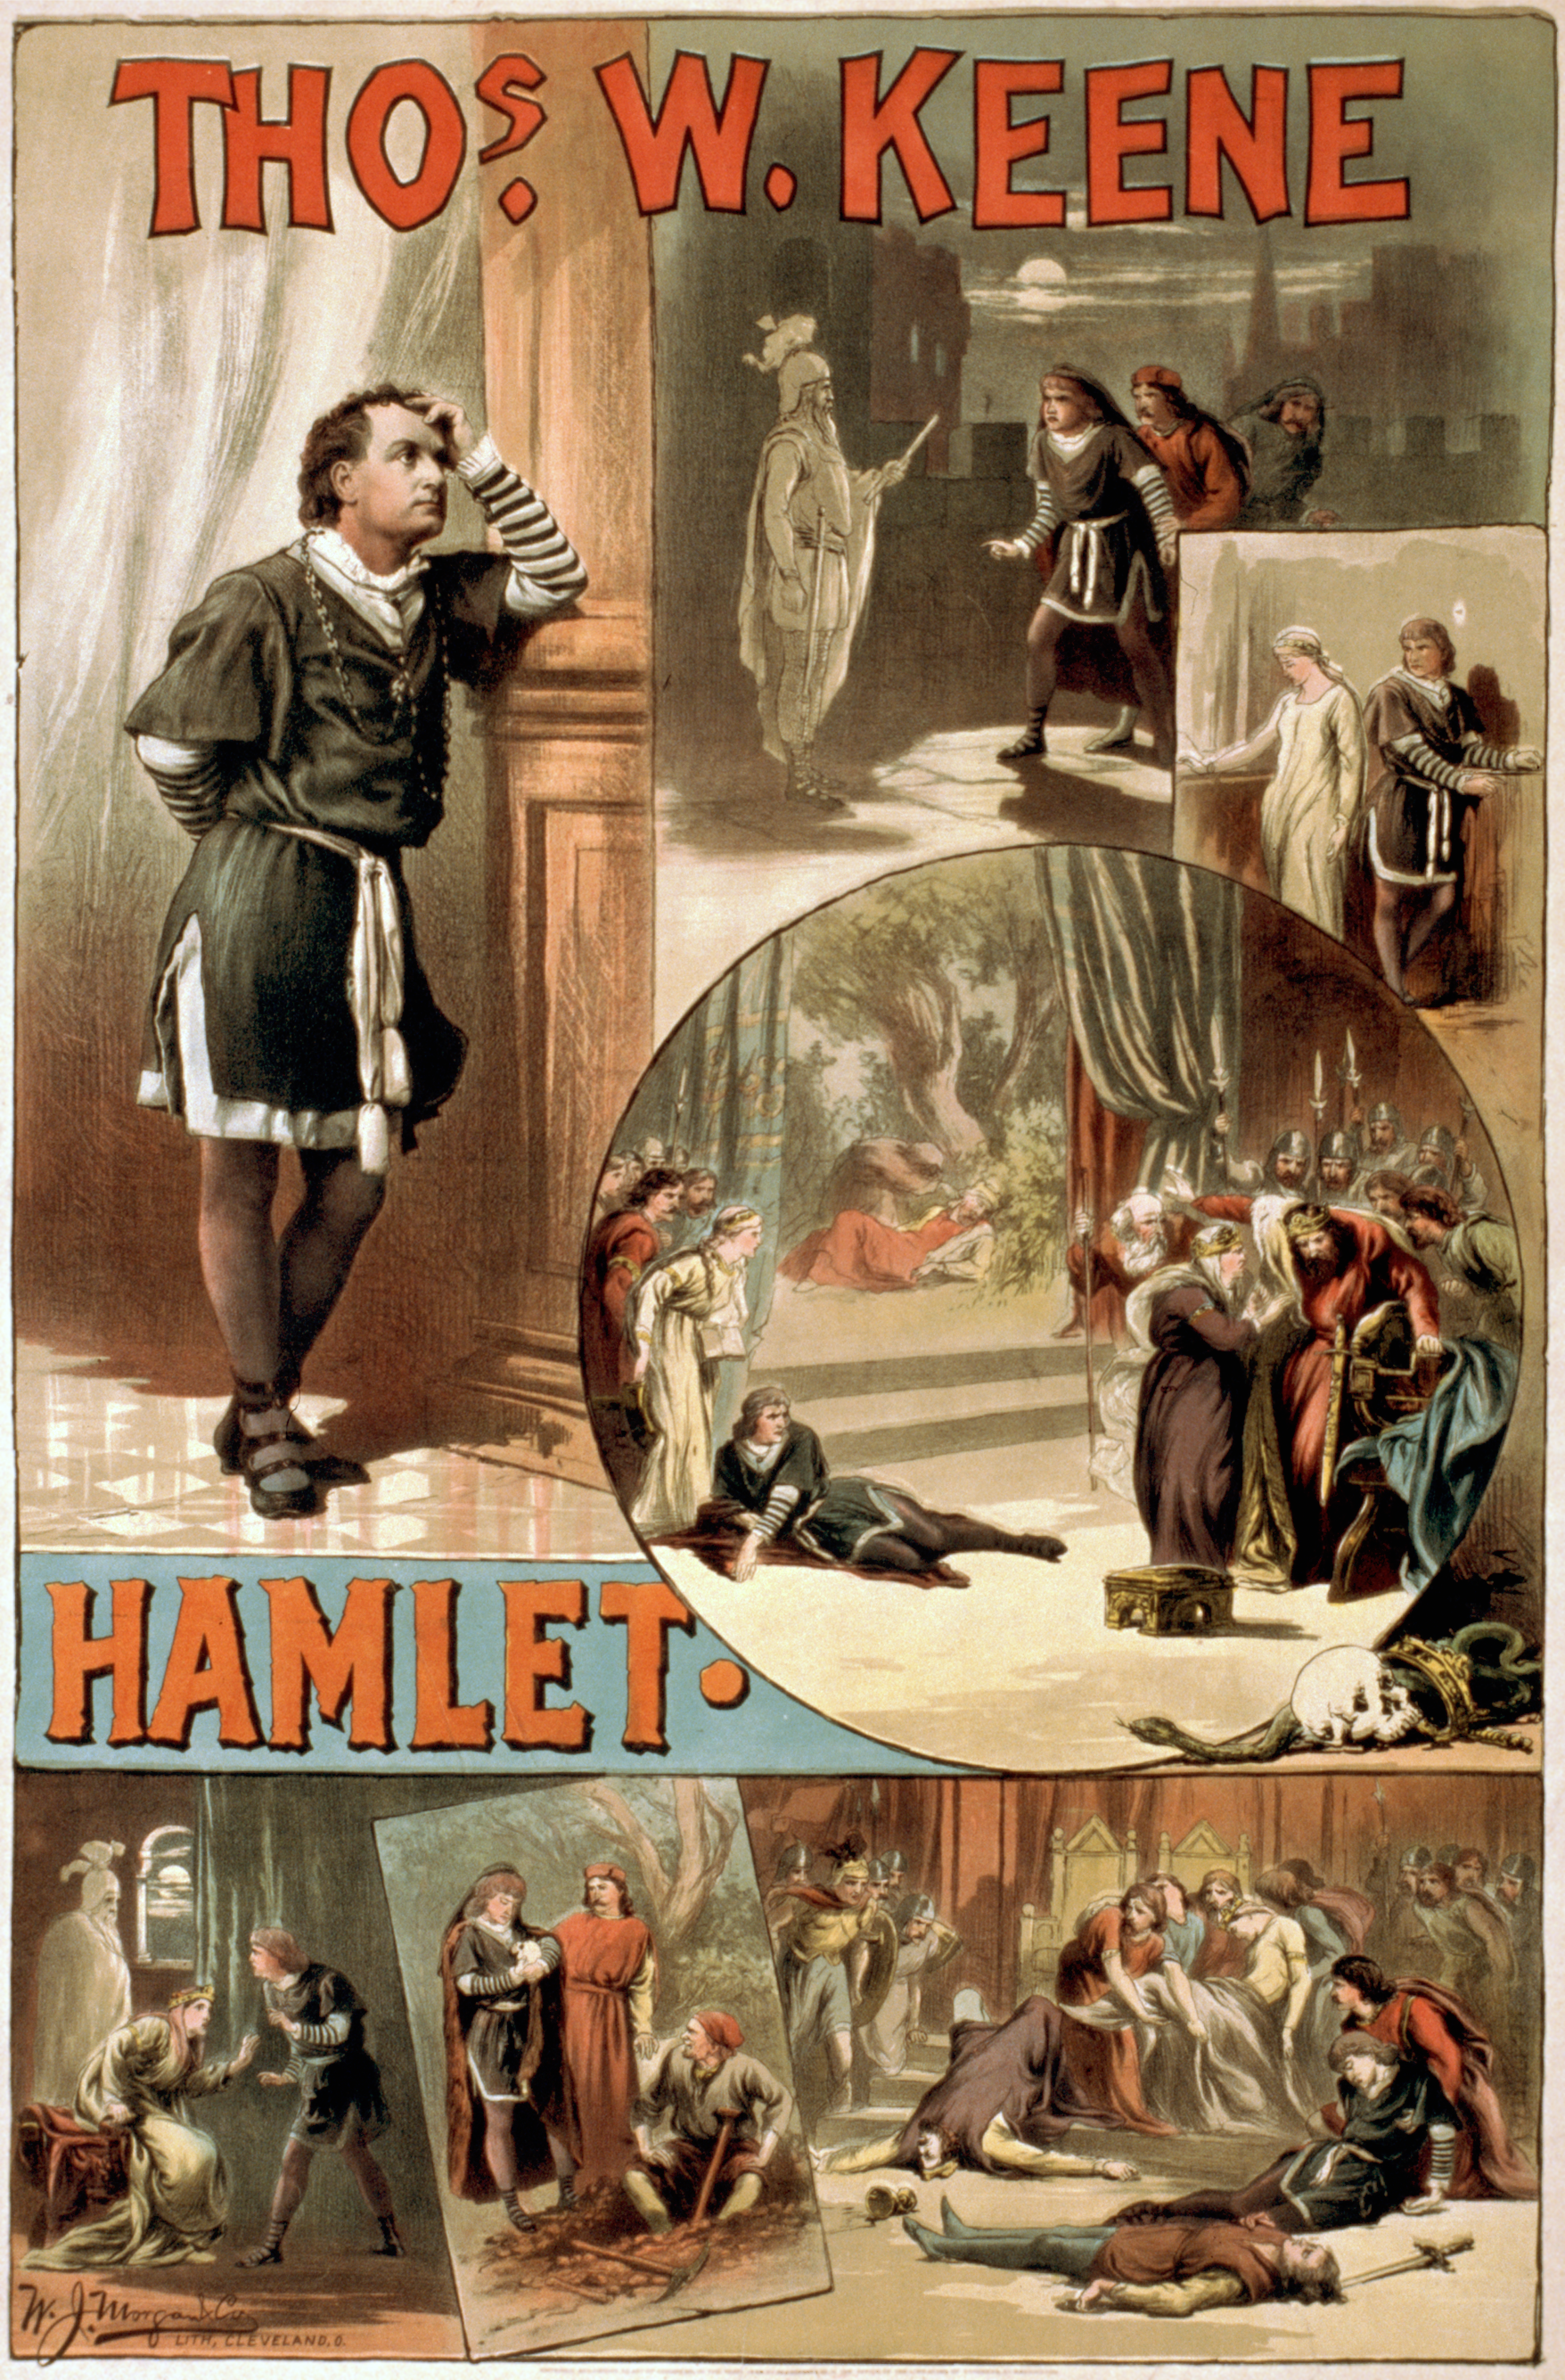 an overview of the revenge concept in hamlet a play by william shakespeare Revenge in hamlet essay examples  a theme of revenge in william shakespeare's play, hamlet 1,011 words 2 pages  an analysis of the revenge concept in hamlet, a play by william shakespeare 1,553 words 3 pages how revenge was carried out in the story of william shakespeare's hamlet.